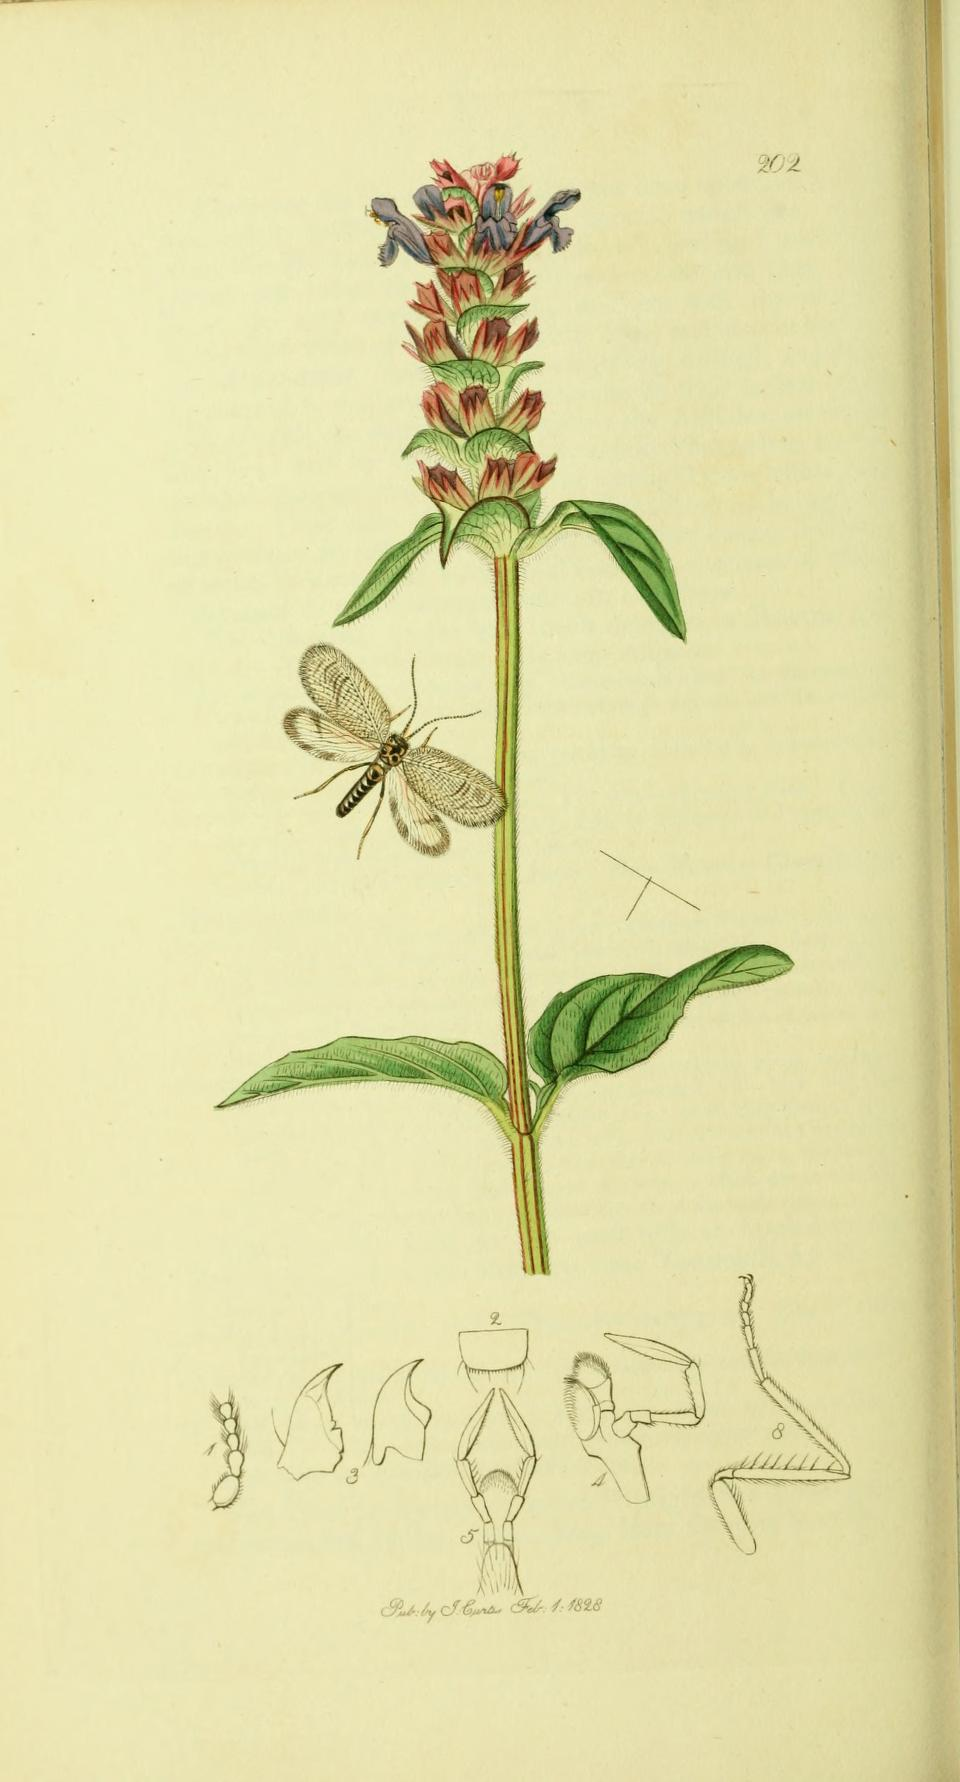 An illustration from British Entomology by John Curtis, the Bordered Brown Lacewing, Megalomus hirtus (Linn.)